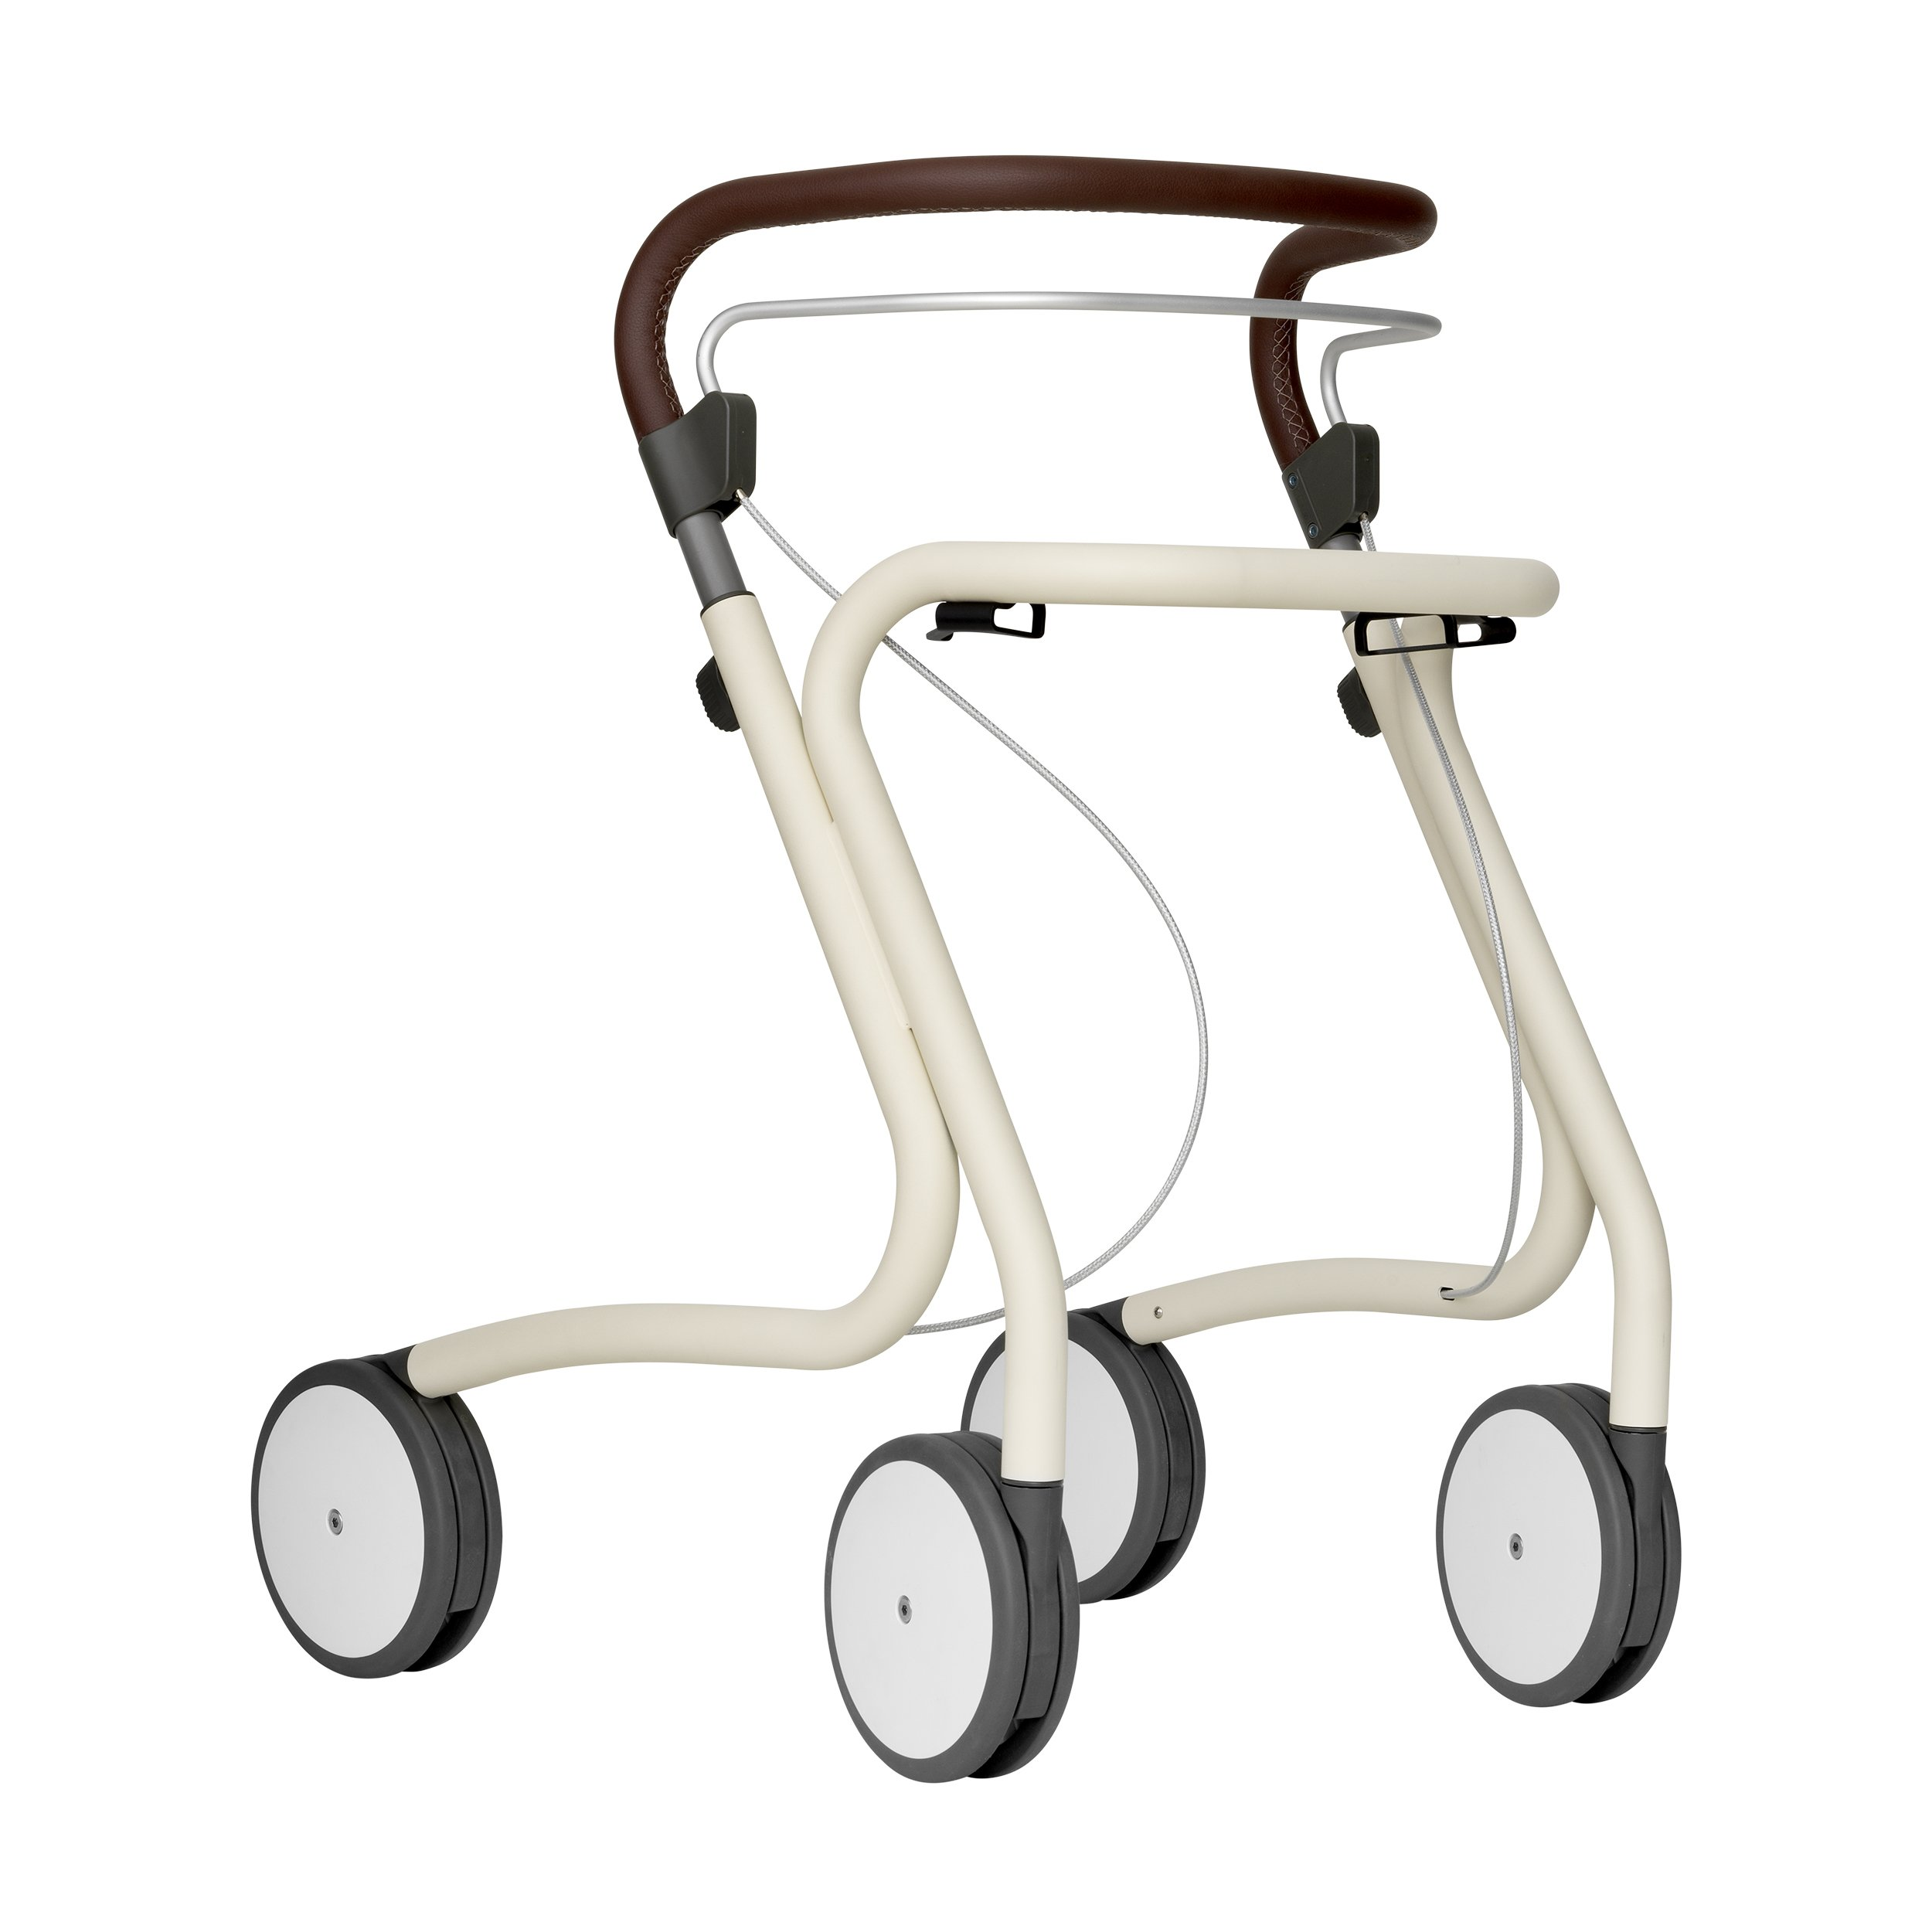 Scandinavian Butler Rollator in Oyster White - seen in profile